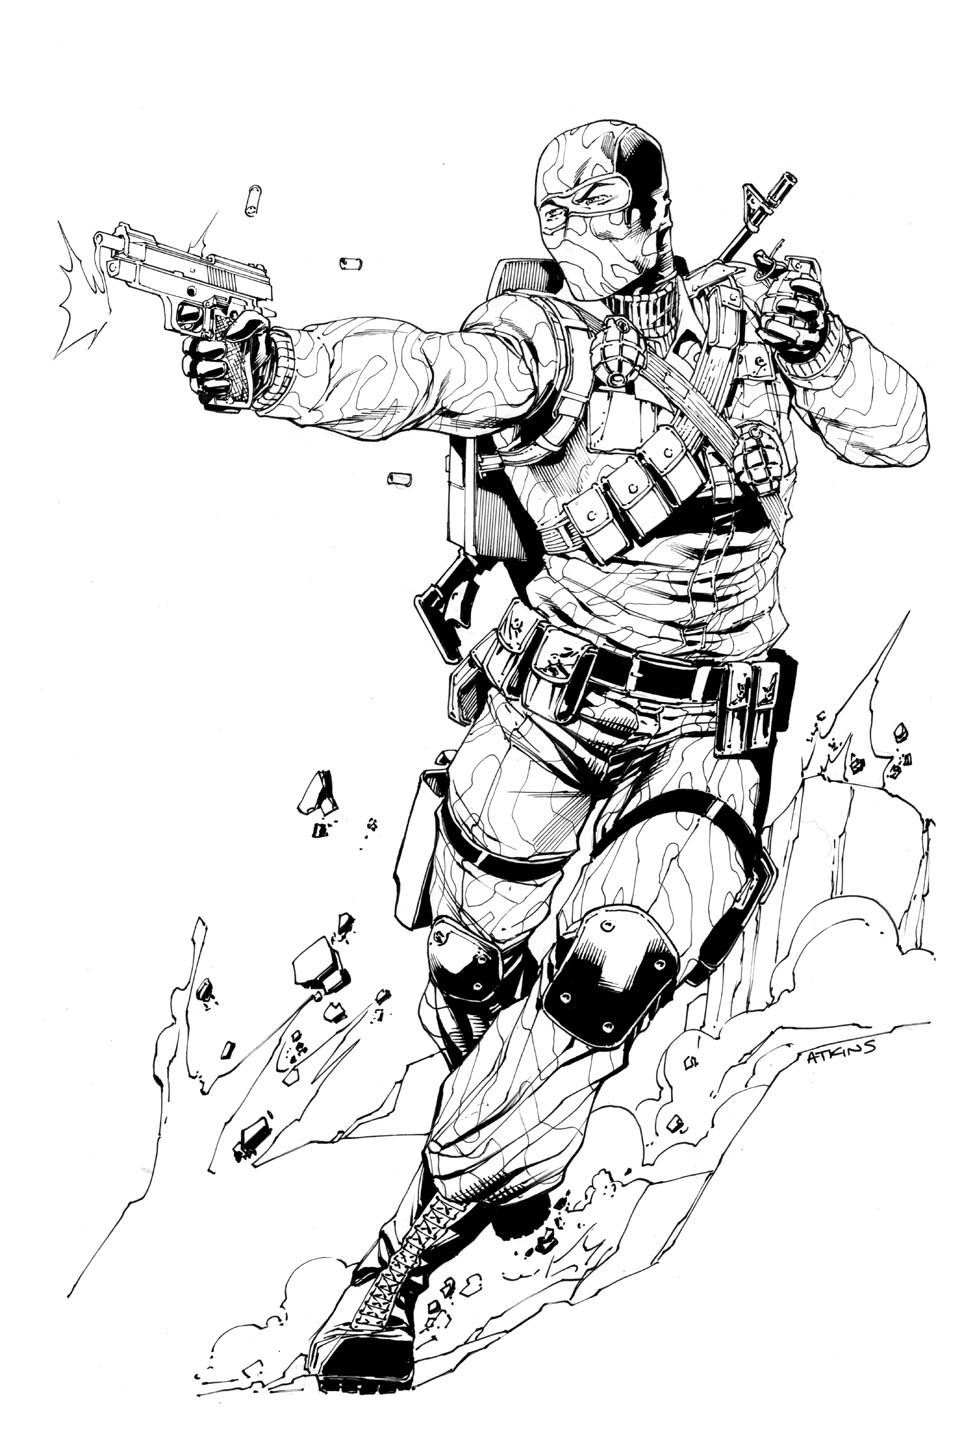 Pin By Pinky Lam On Army Snake Eyes Gi Joe Superhero Art Military Drawings